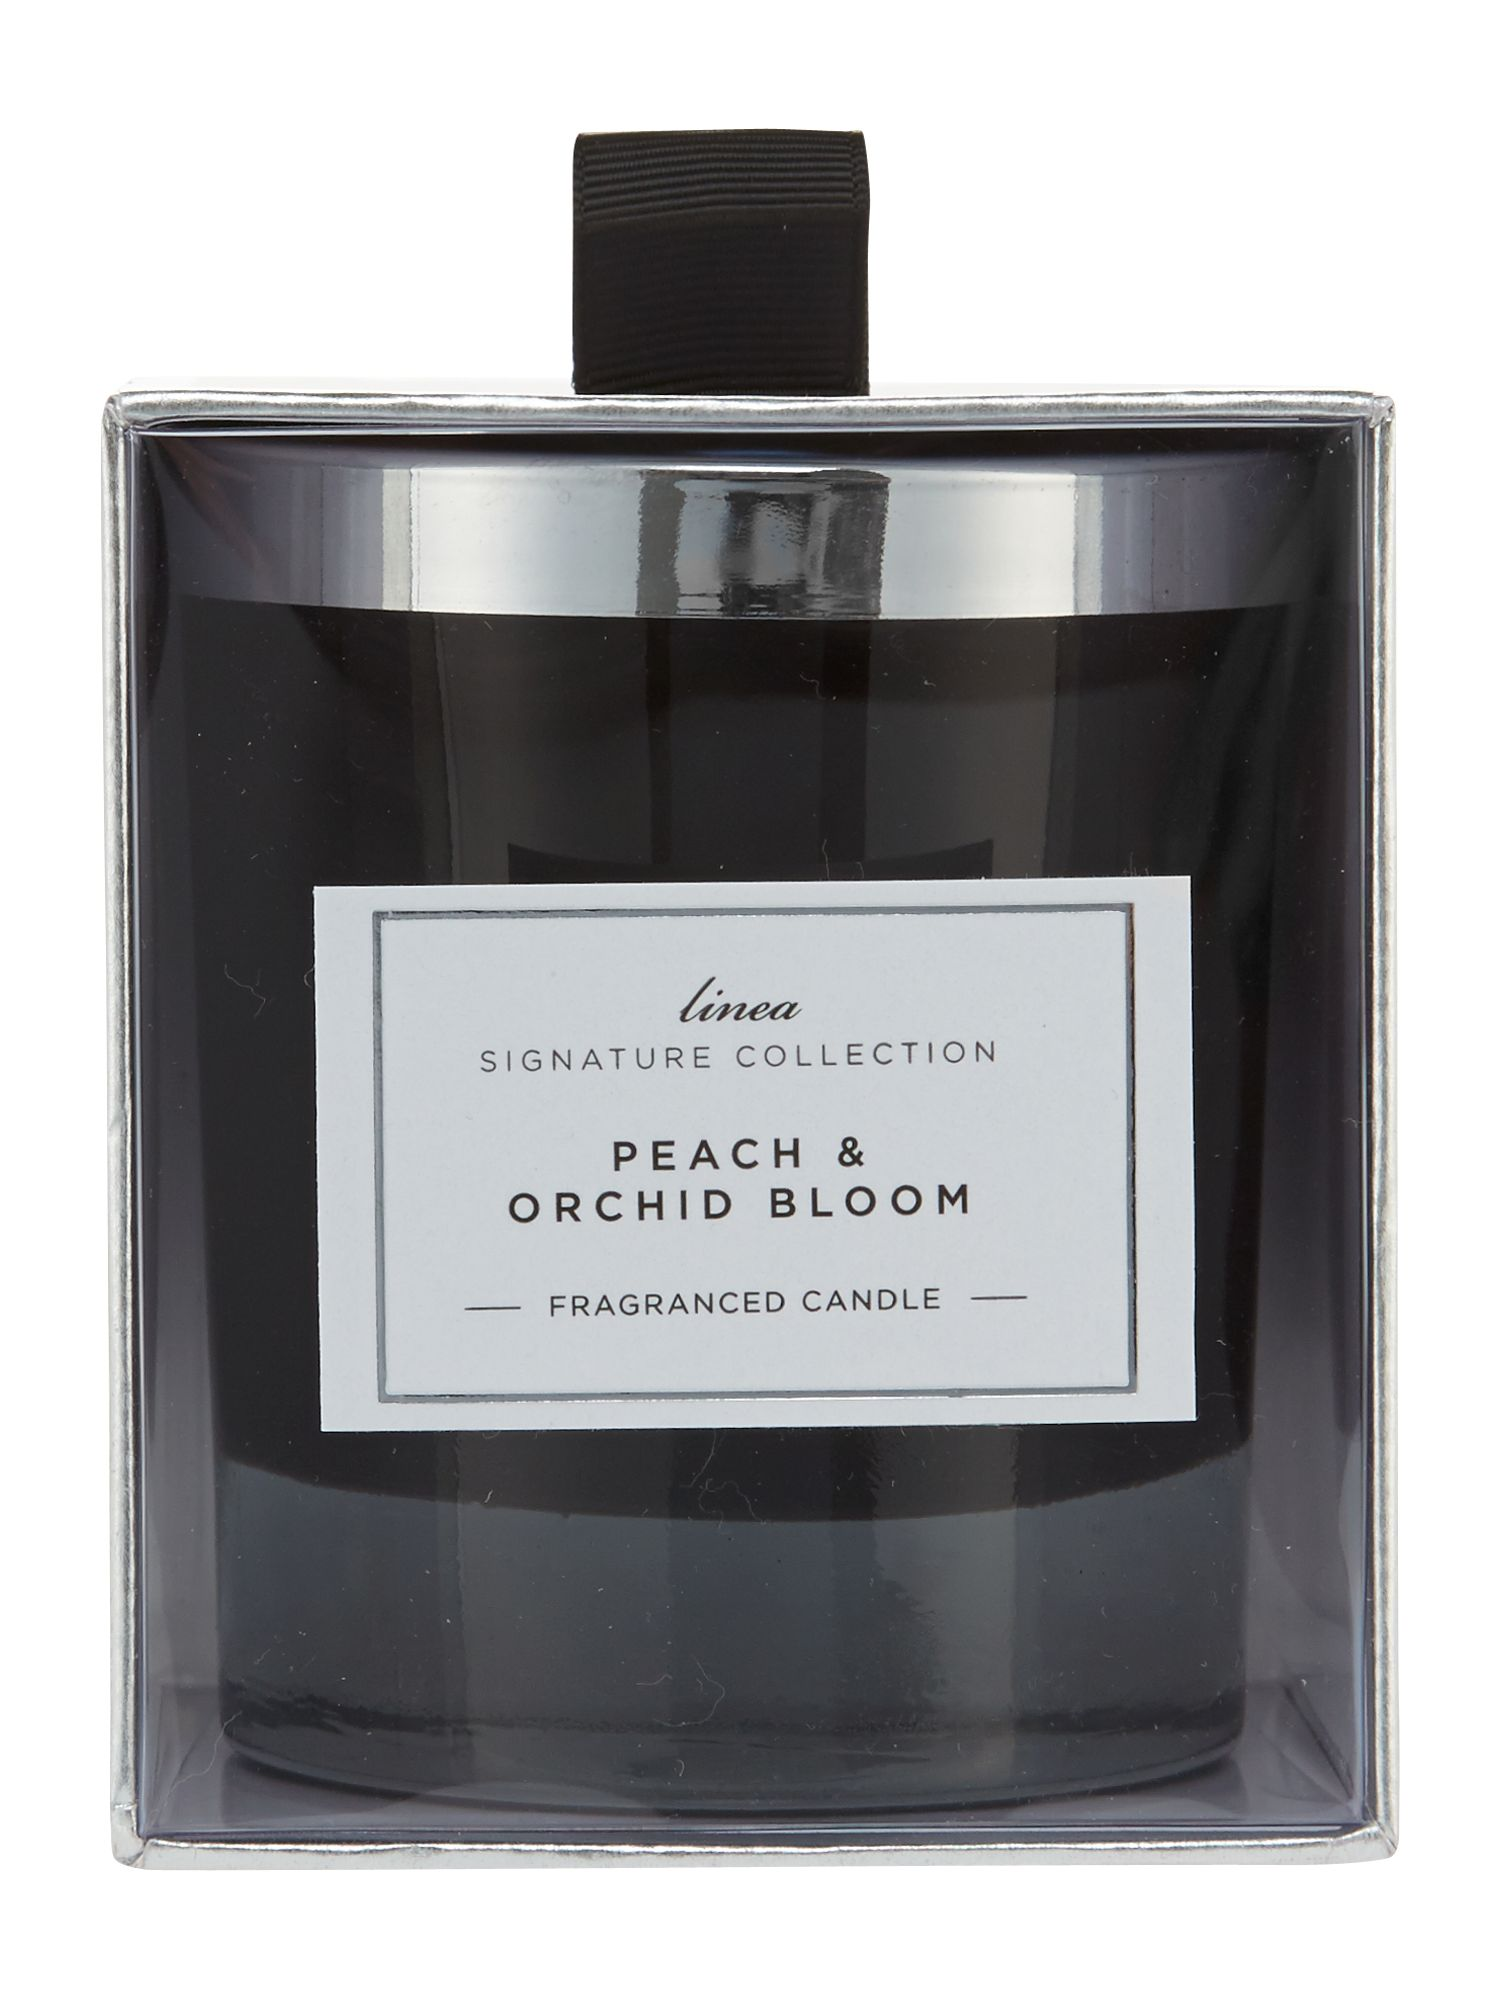 Peach & orchid bloom single candle